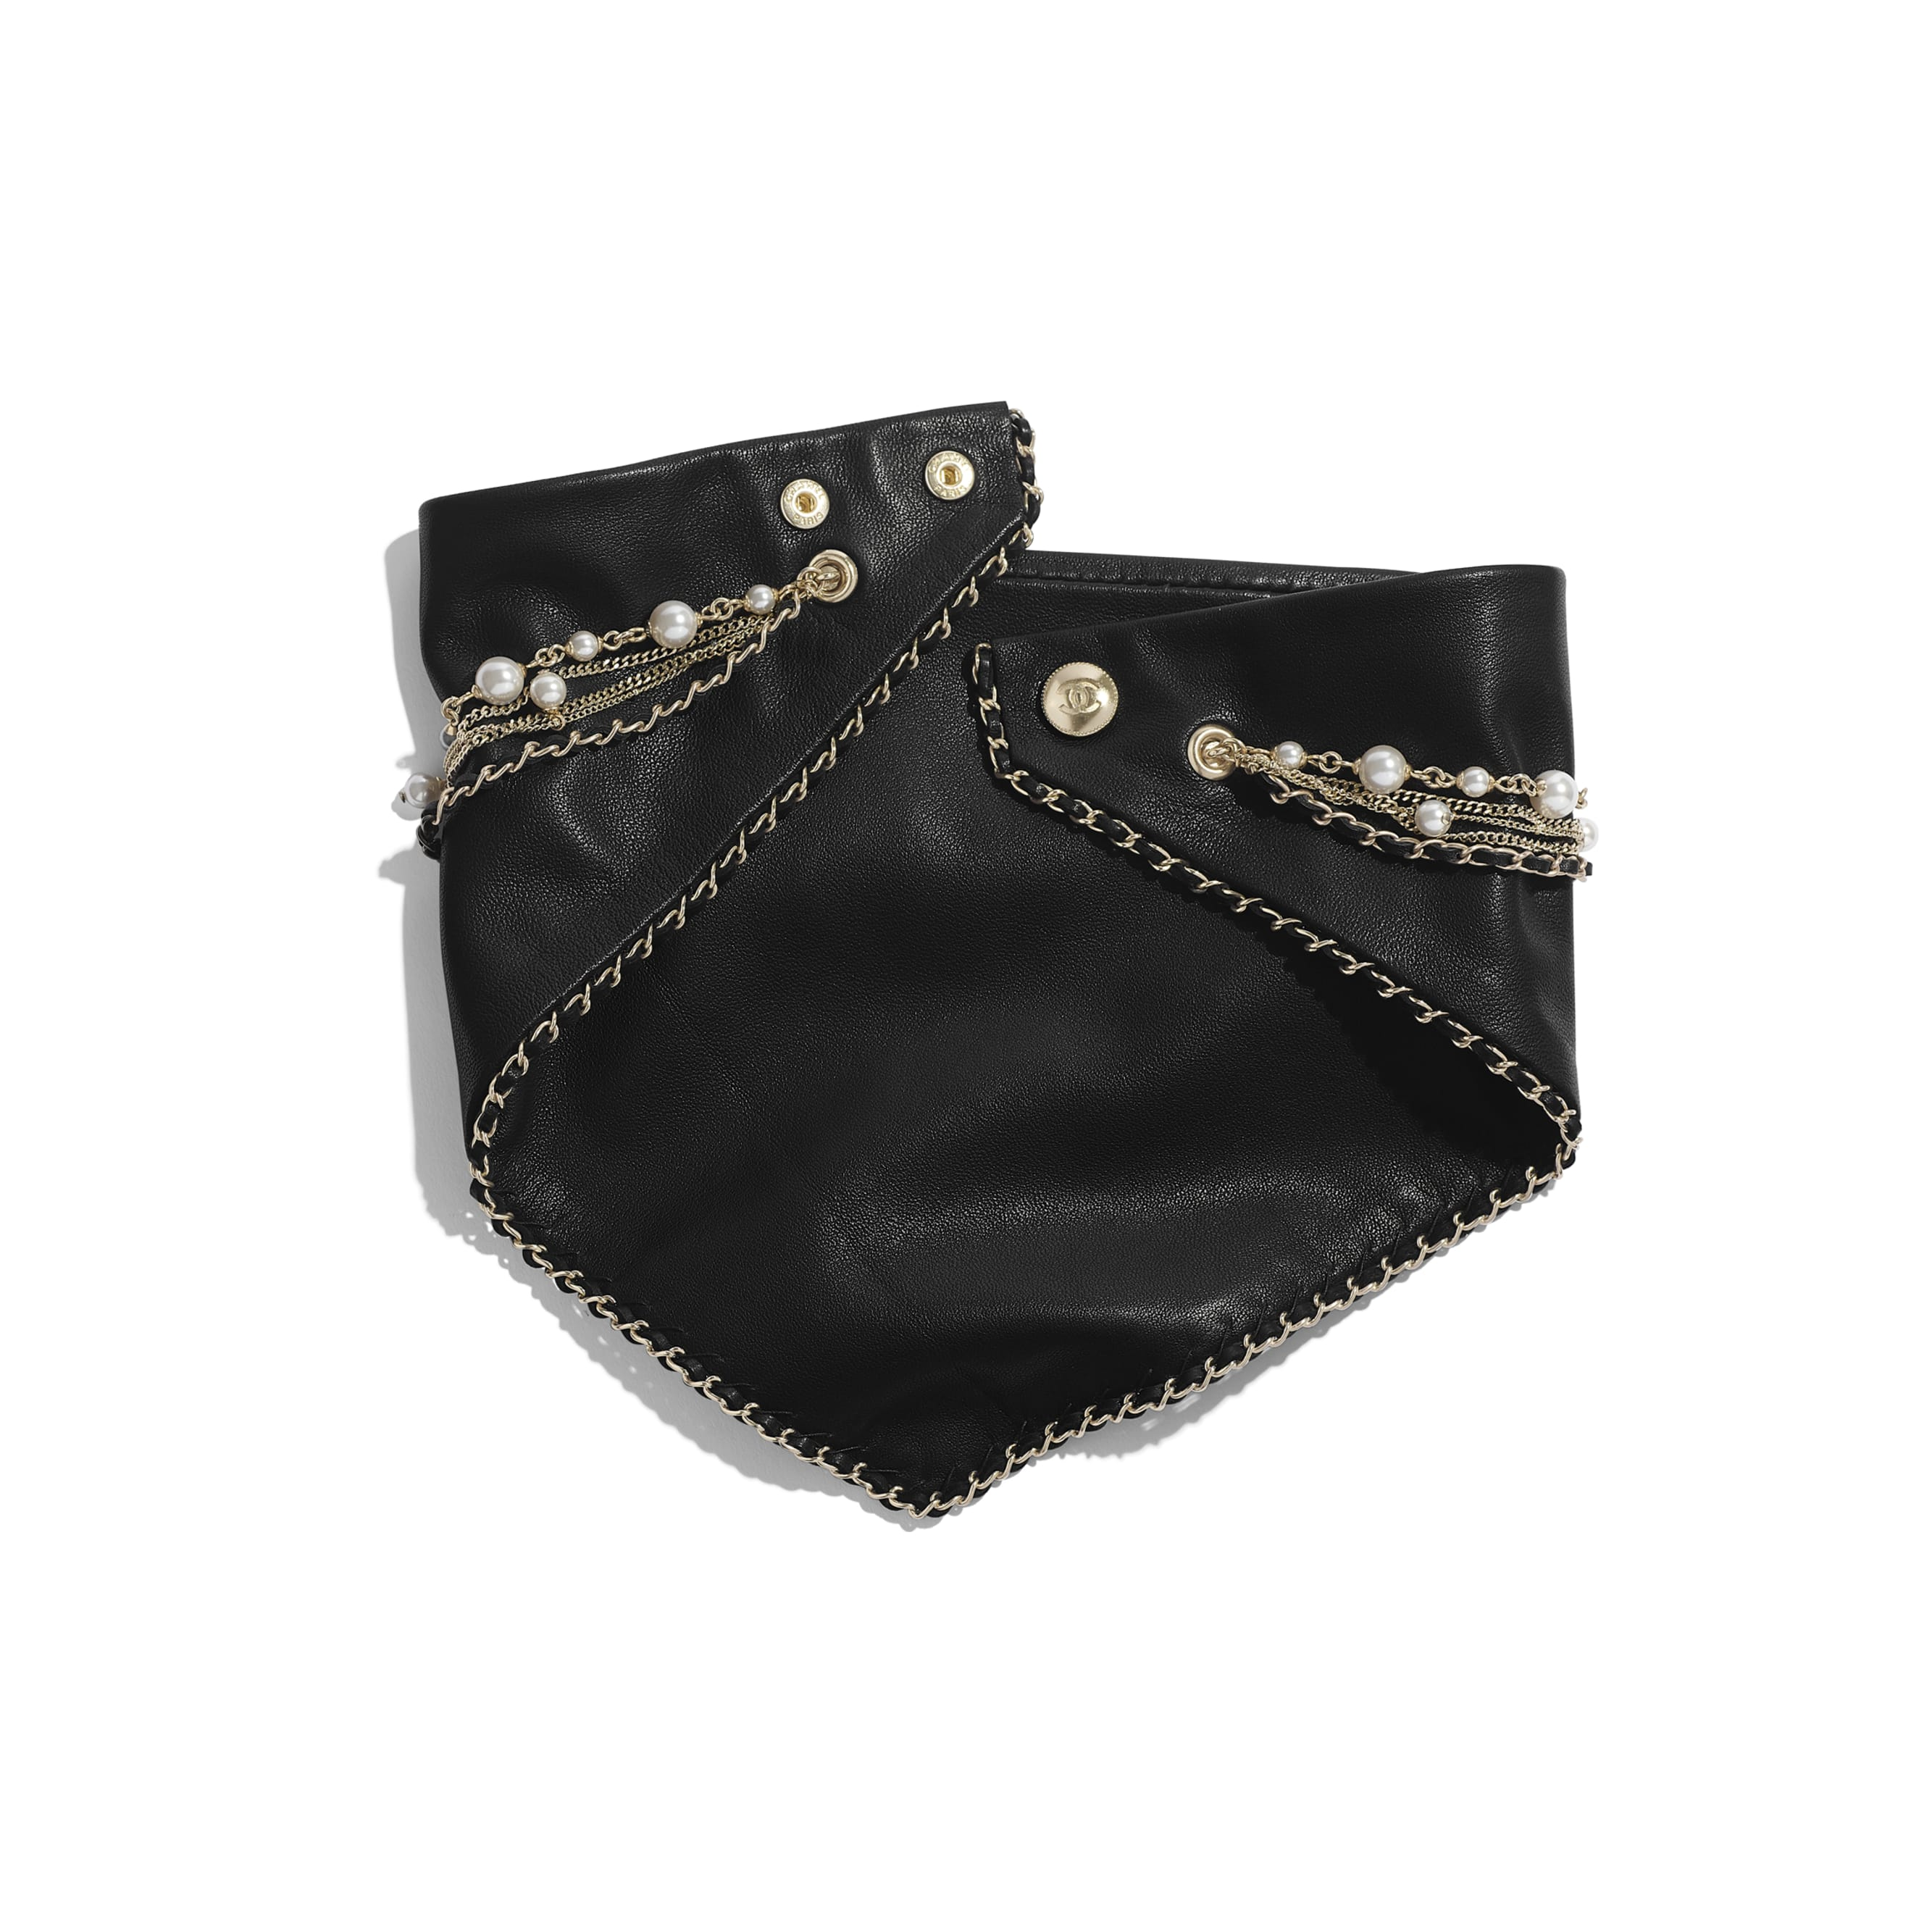 Bandana - Black, Pearly White & Crystal - Lambskin, Calfskin, Glass Pearls, Strass & Gold-Tone Metal - Alternative view - see standard sized version